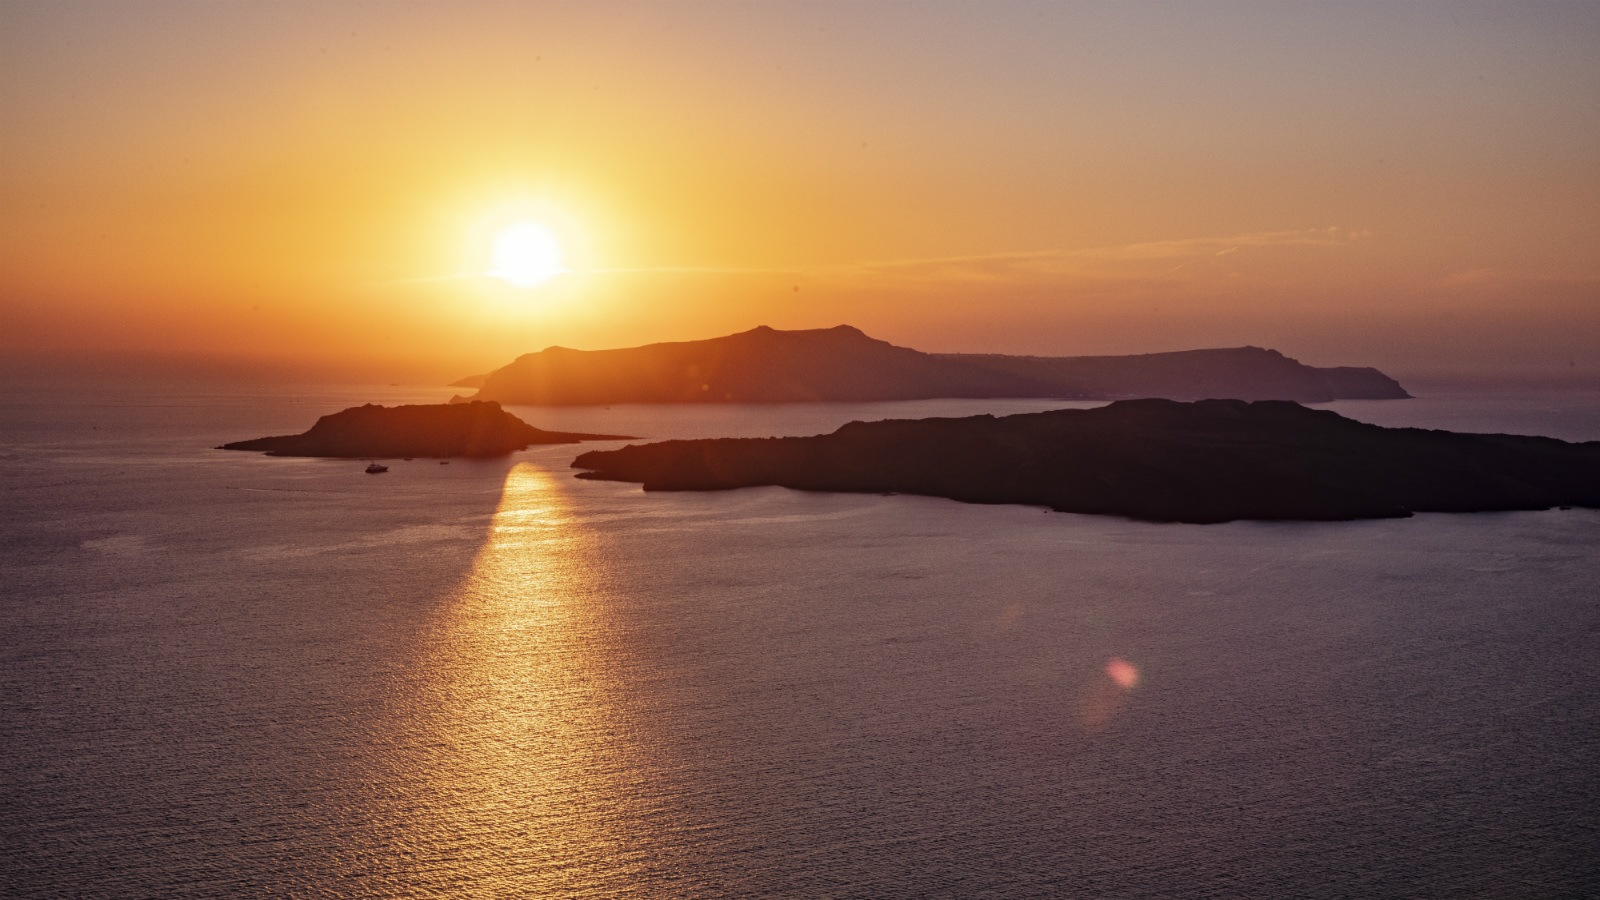 mountain range surrounded by calm sea at golden hour